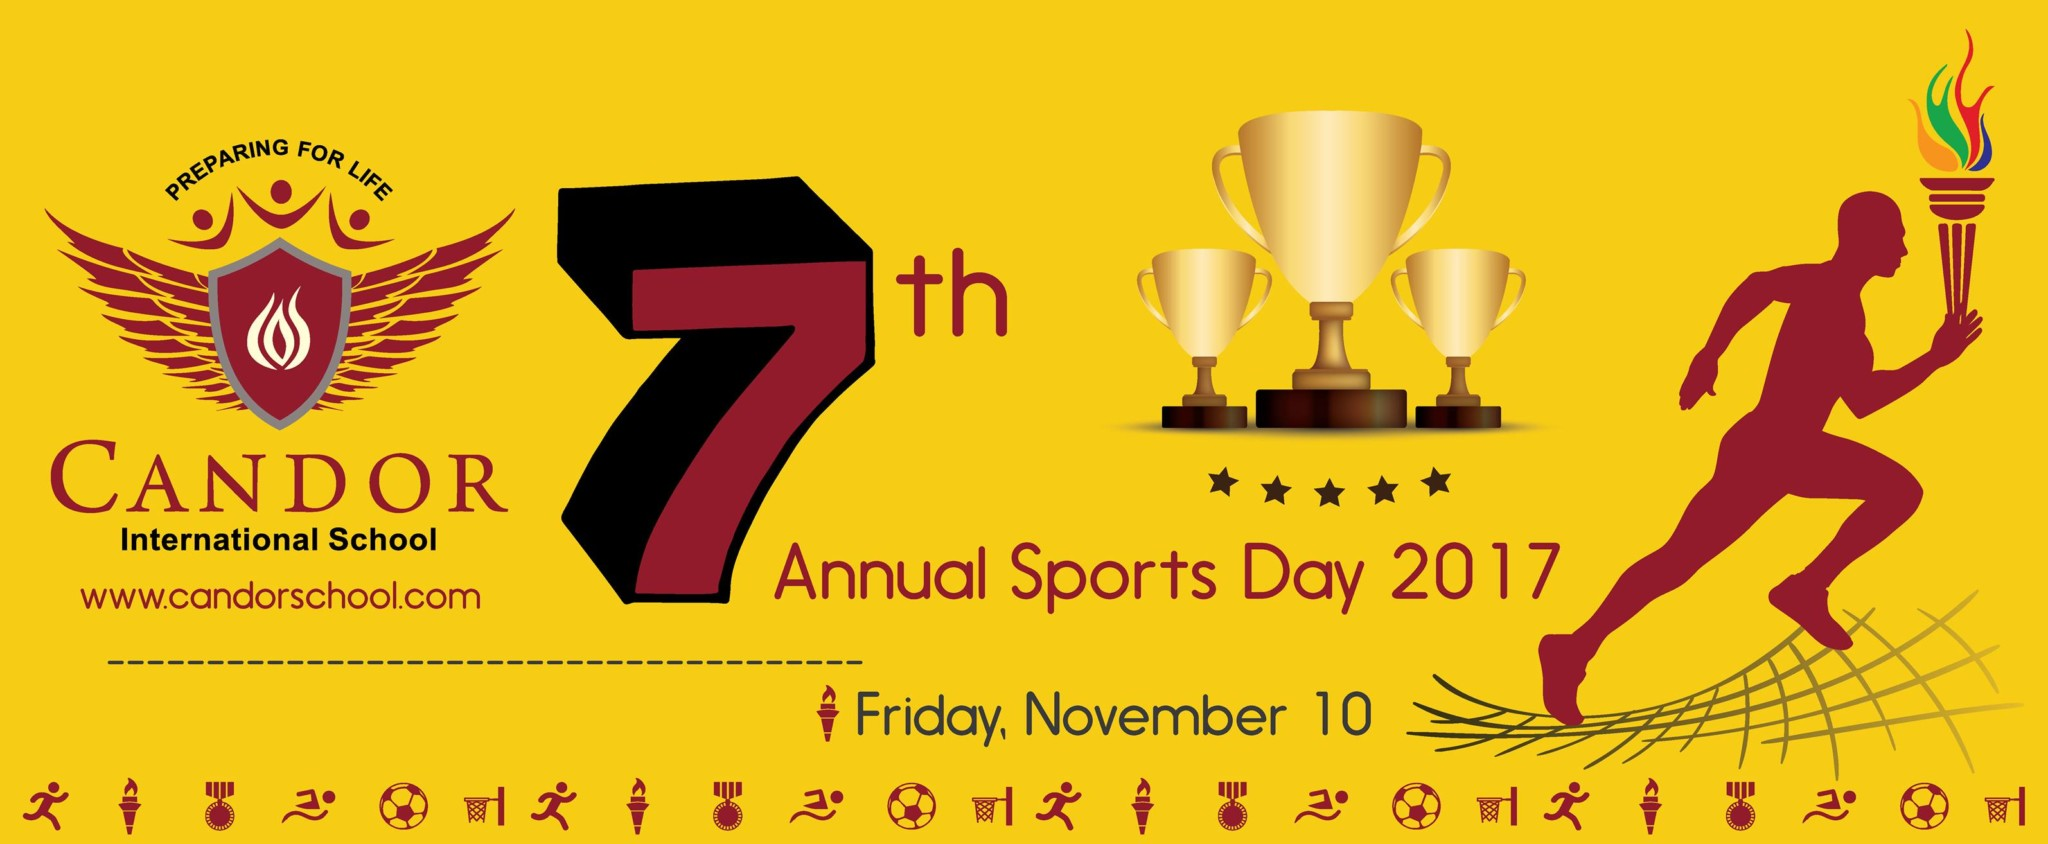 report on annual sports day Oxford grammar school celebrated it's 28 th sports-cum-annual day celebrations on,  a pillar of strength and support to the institution read the annual sports report.